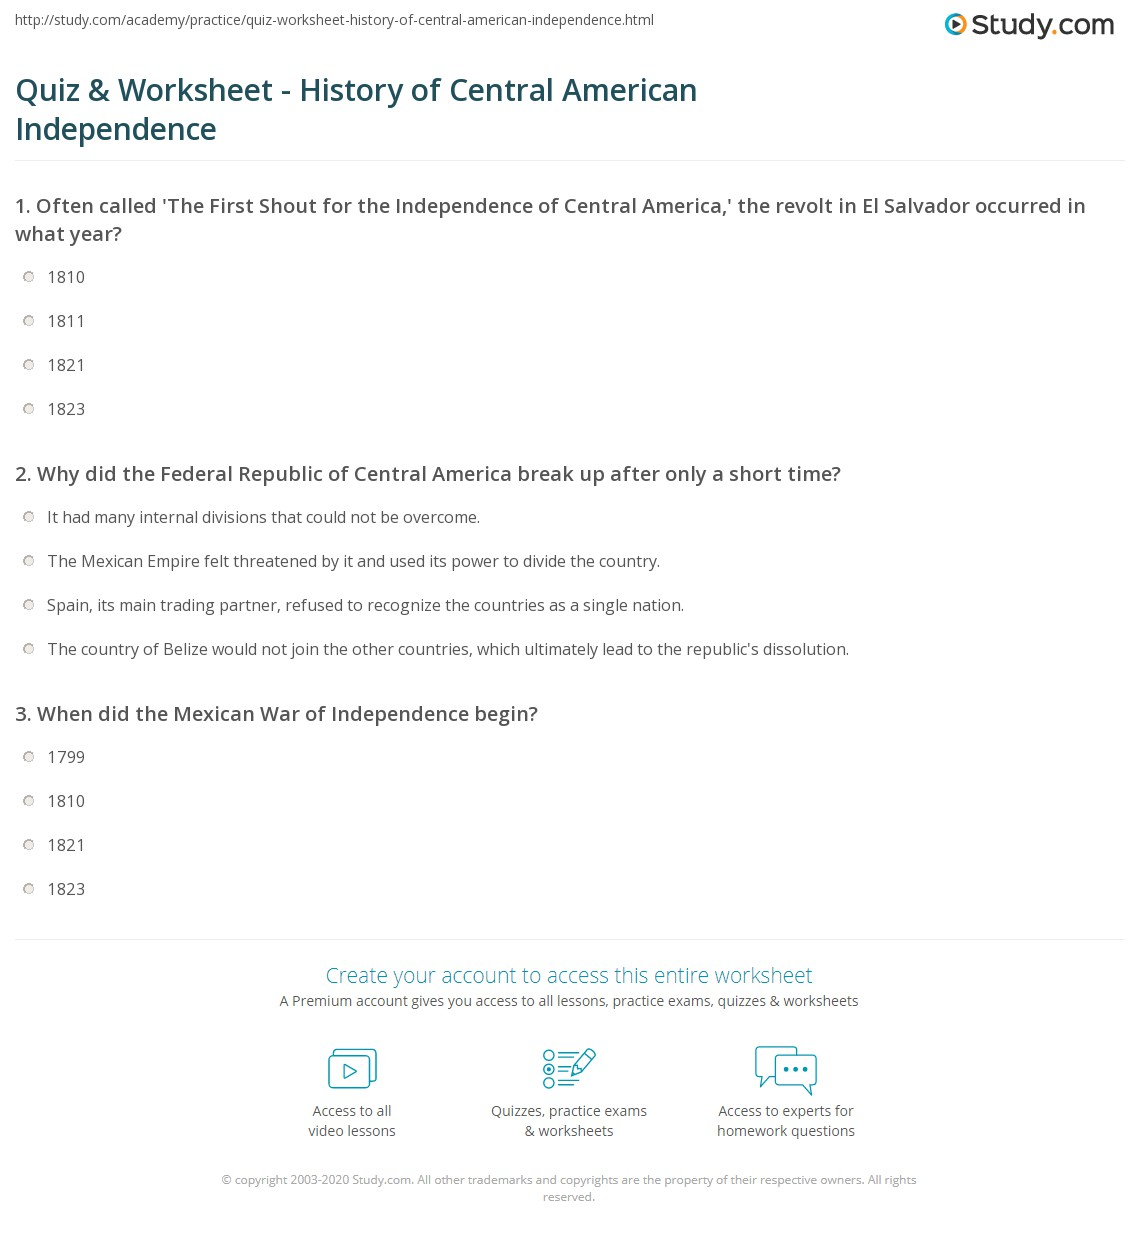 Quiz & Worksheet - History of Central American Independence